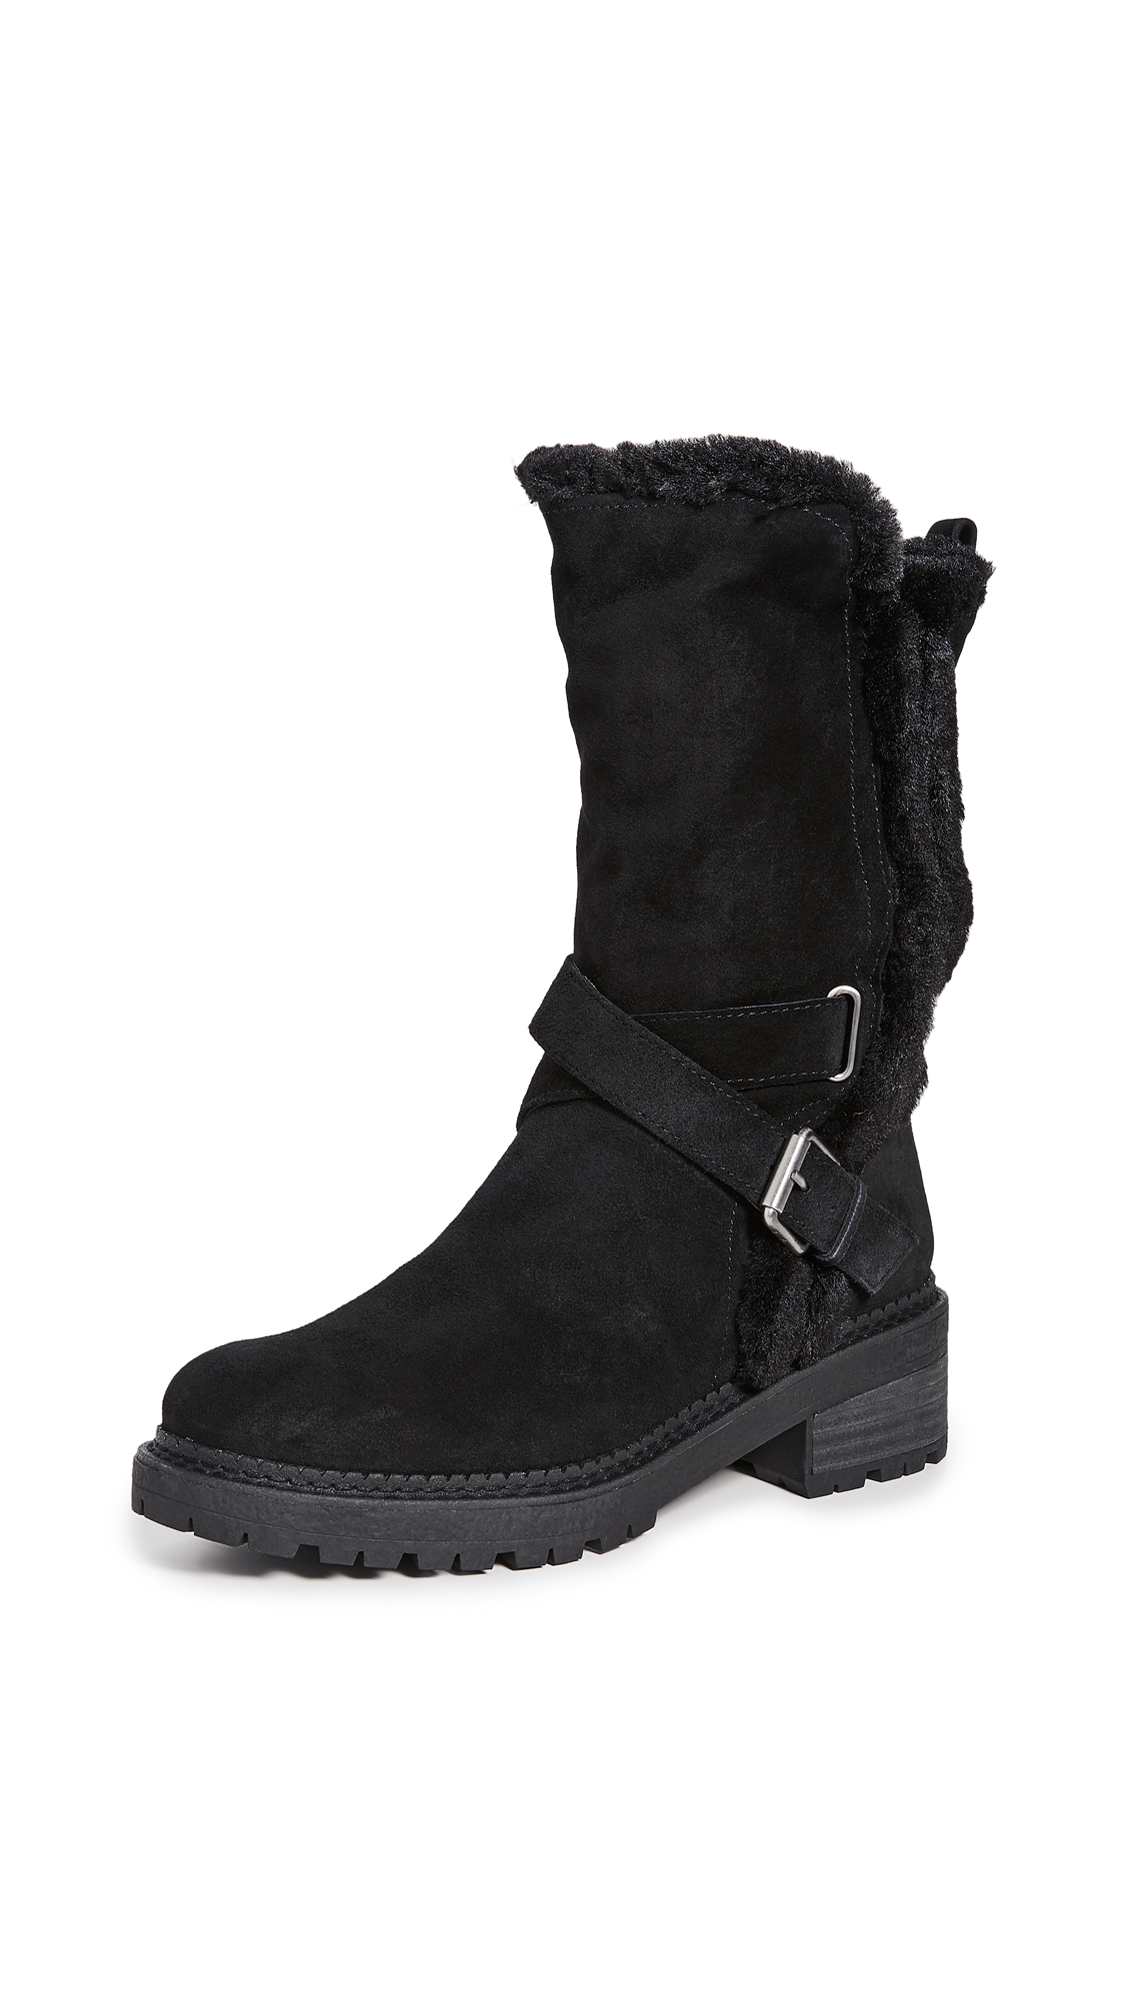 Sam Edelman Jailyn Boots - 60% Off Sale